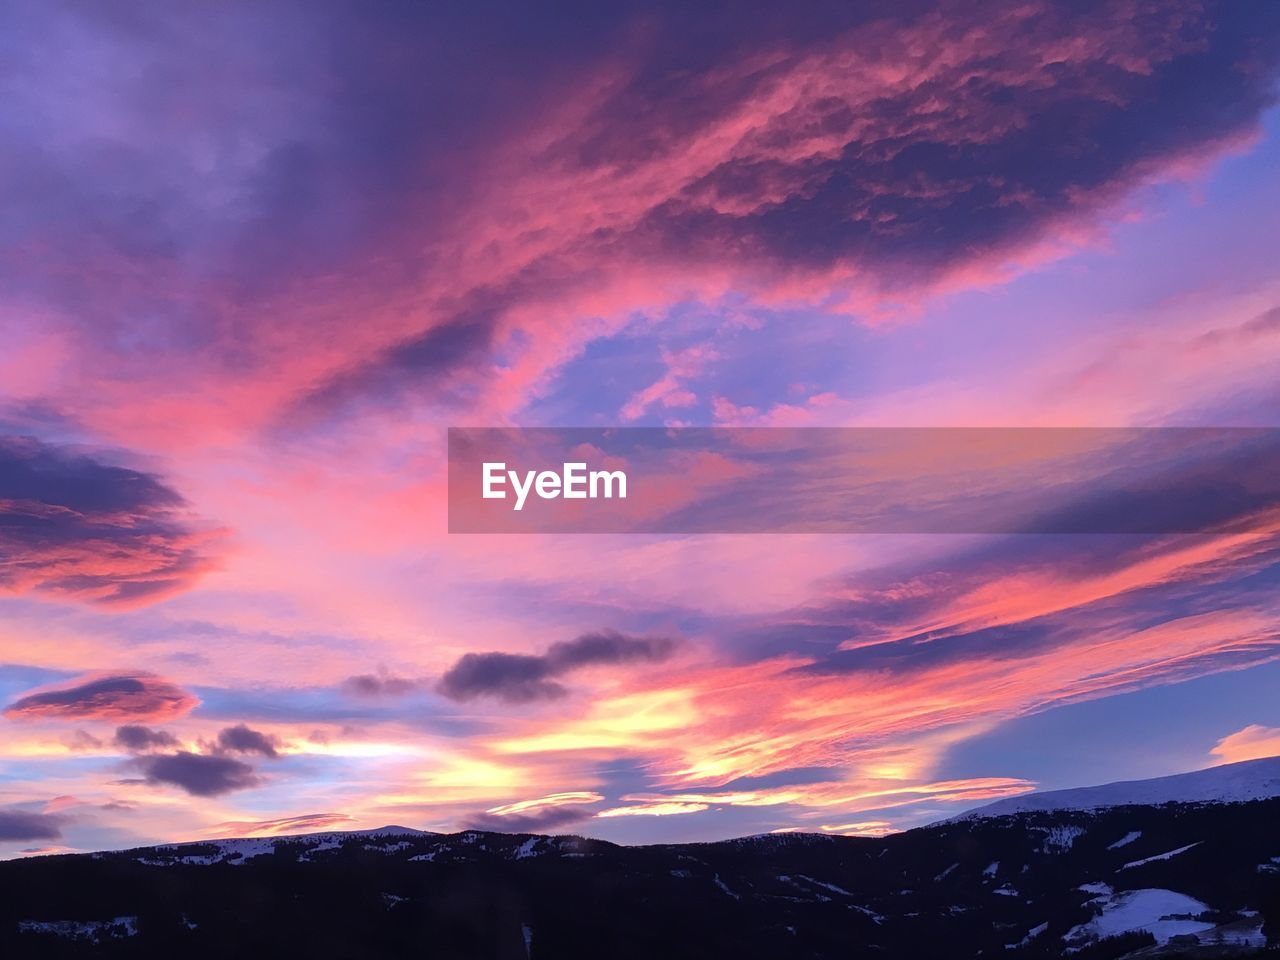 sky, cloud - sky, beauty in nature, scenics - nature, sunset, tranquil scene, tranquility, mountain, nature, no people, idyllic, non-urban scene, orange color, silhouette, environment, landscape, dramatic sky, outdoors, low angle view, mountain range